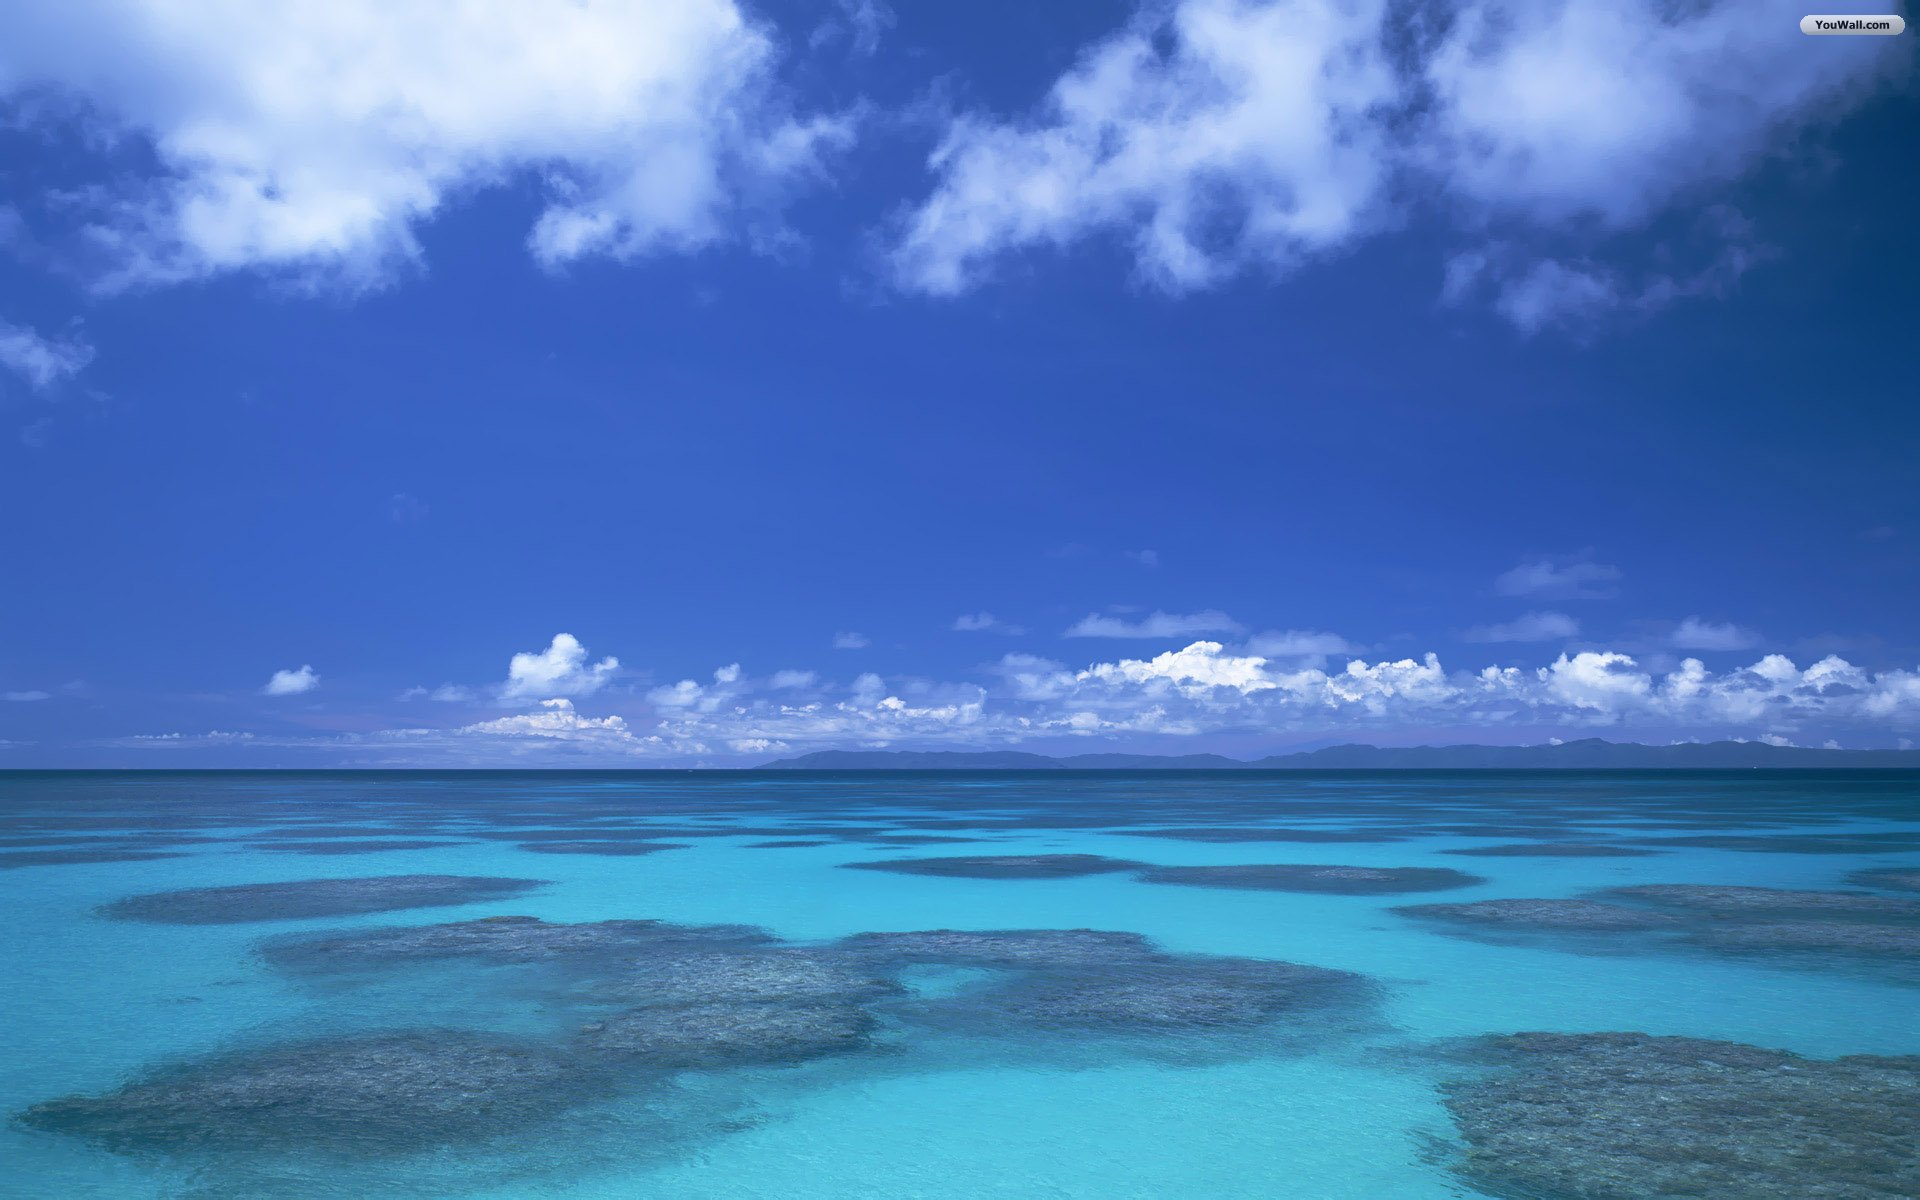 Blue Water Sea With Blue Sky Wallpaper  Free Wallpapers 1920x1200